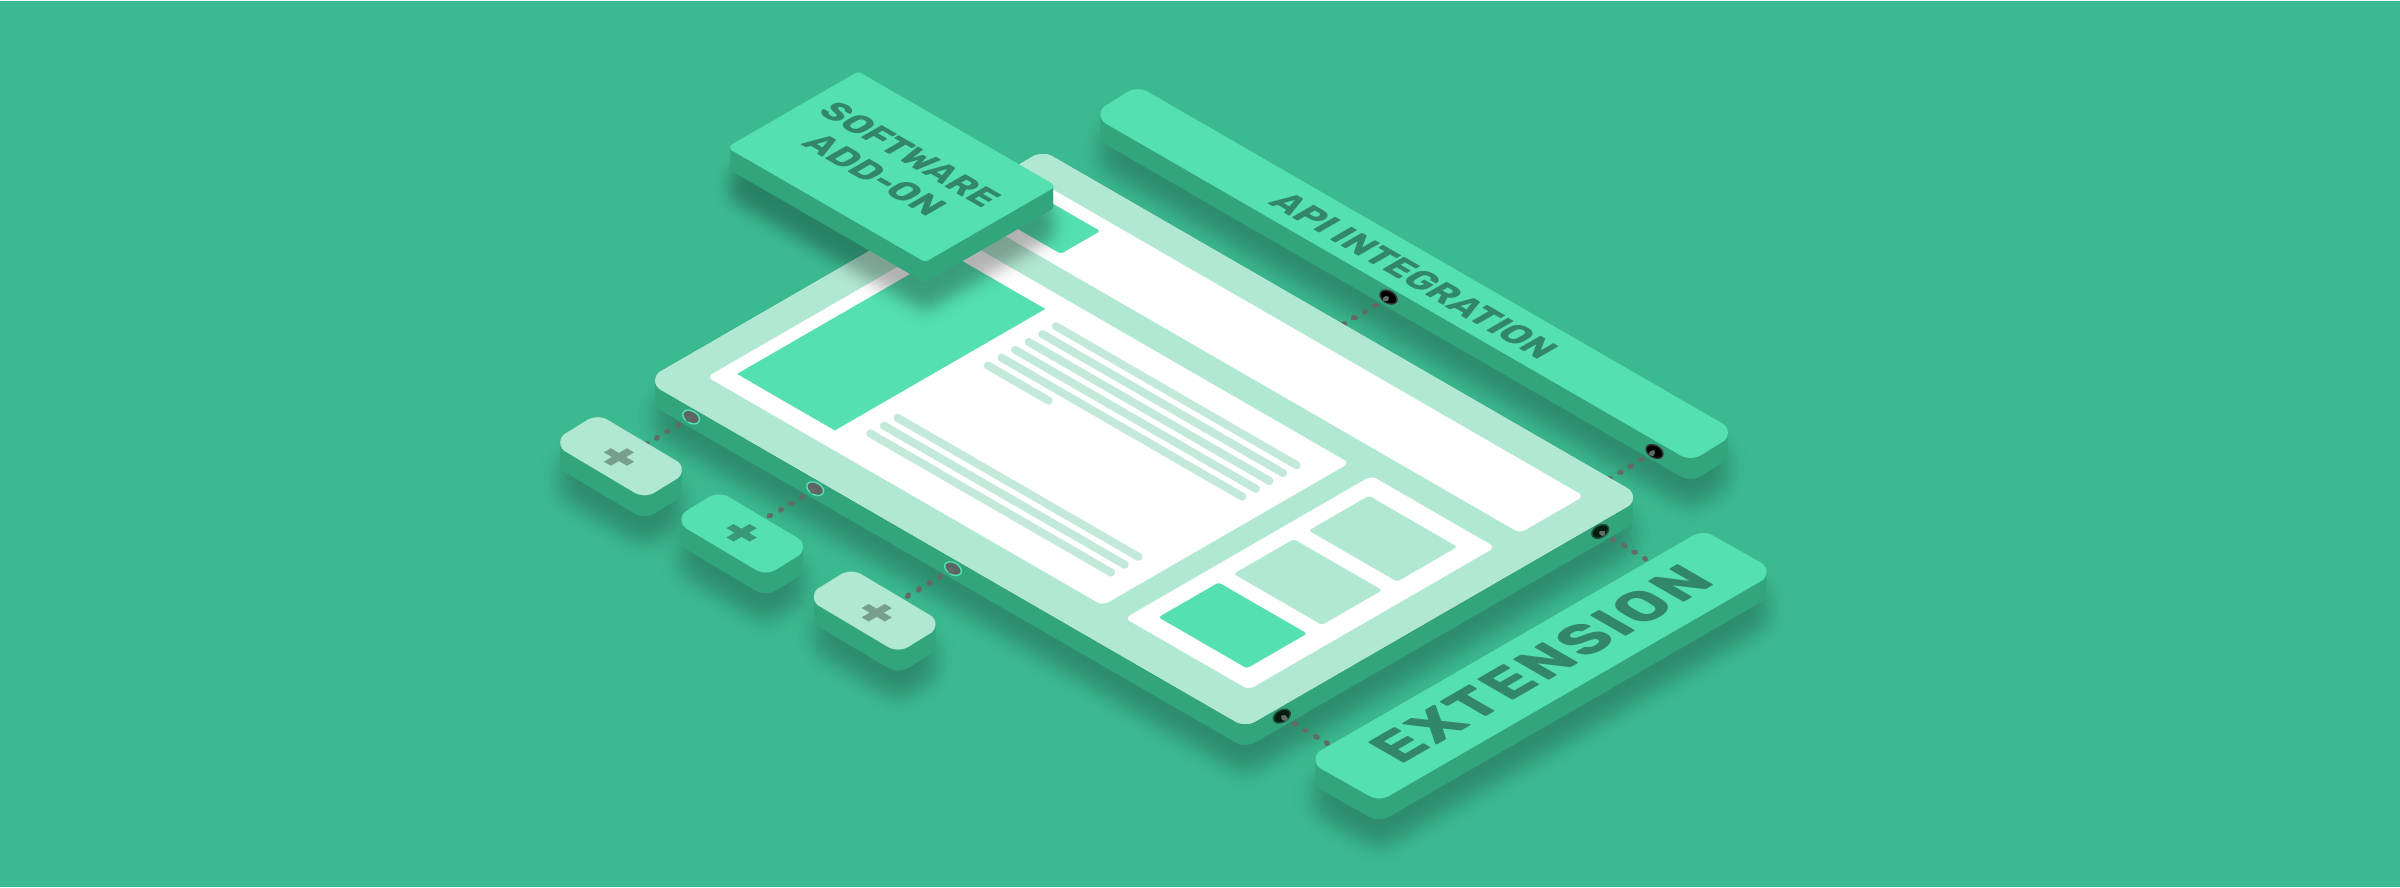 Why You Shouldn't Take the DIY Approach to Building Your Business Website Article layout image